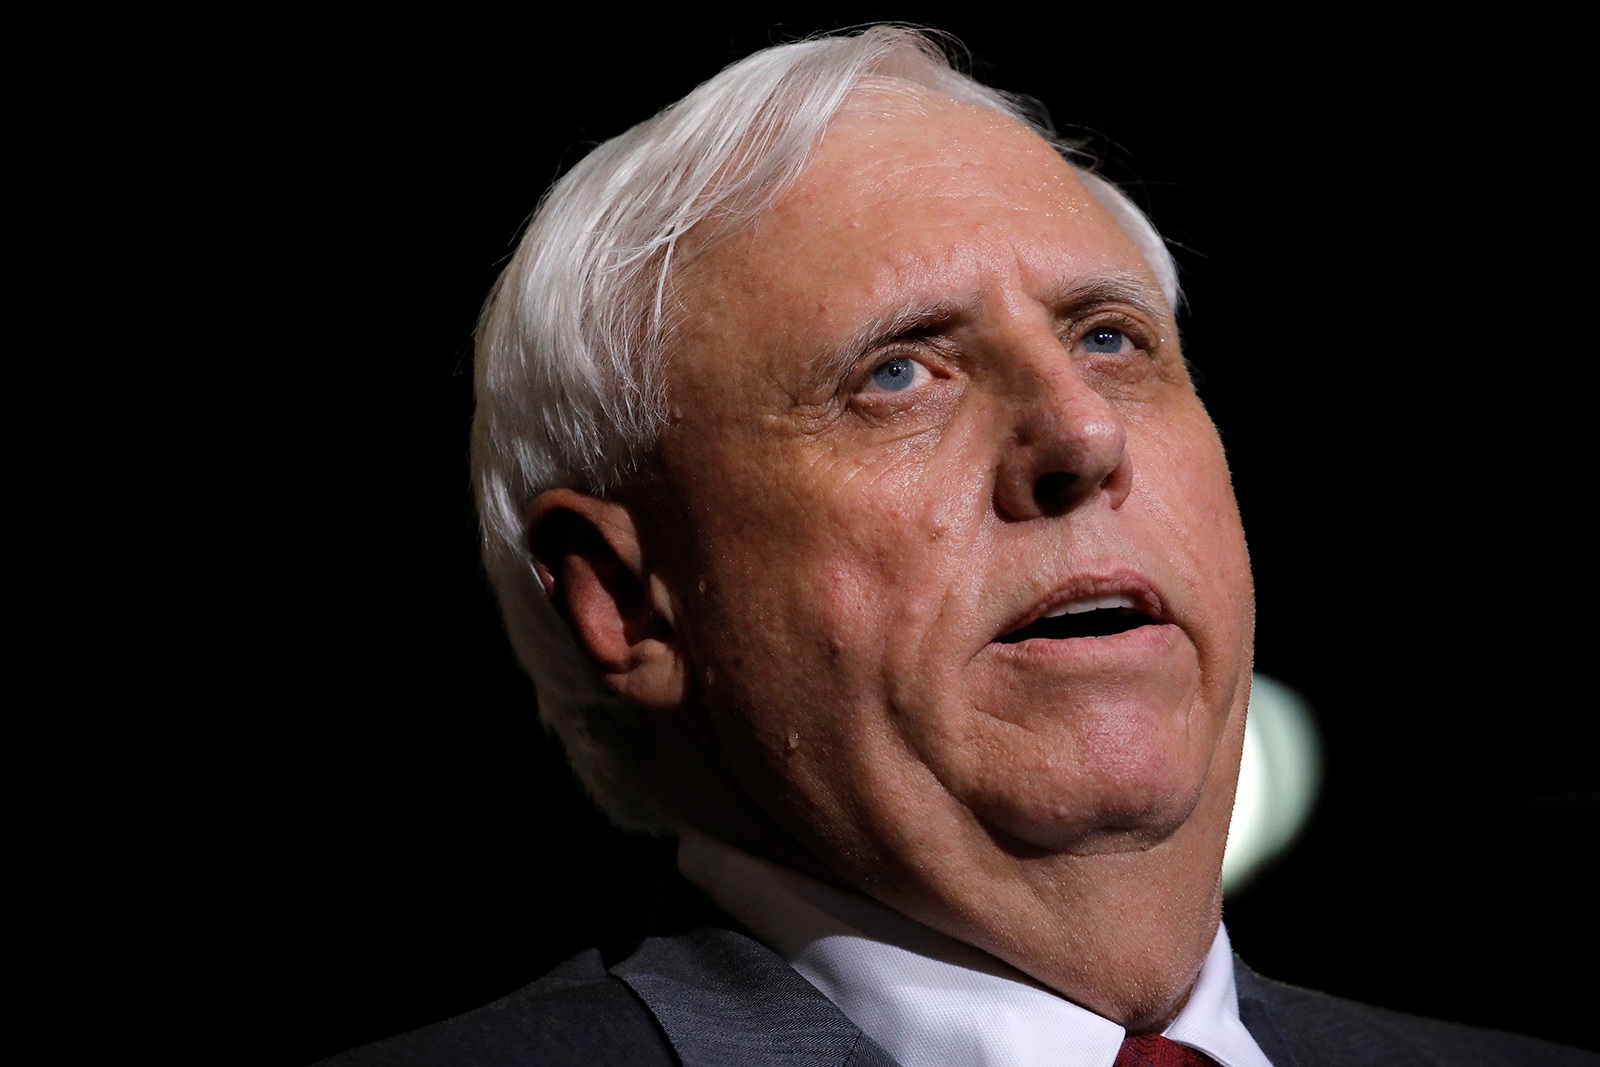 Gov. Jim Justice speaks during a rally in Huntington, West Virginia on August 3, 2017.